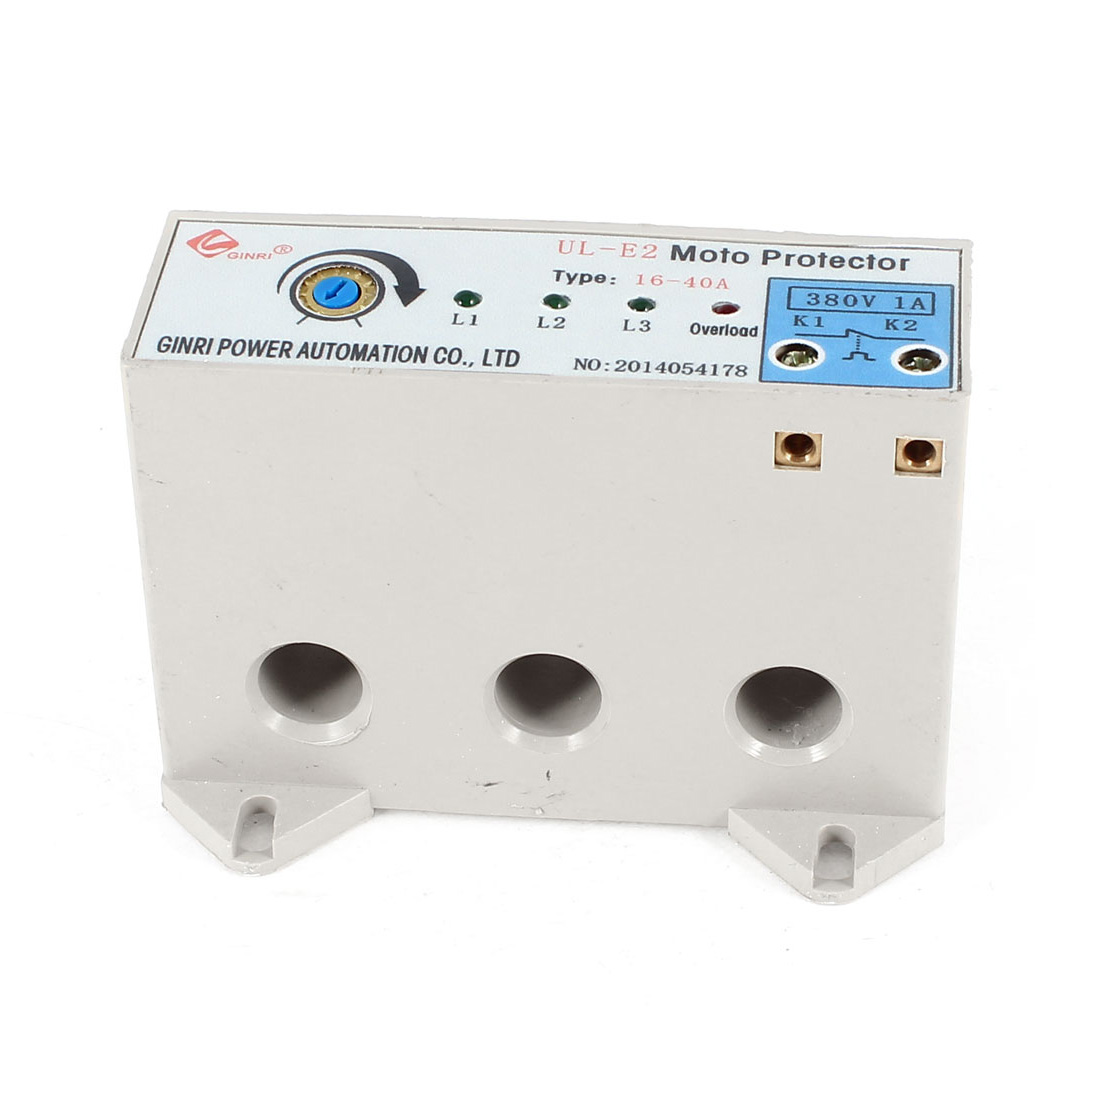 UL-E2/16-40A 3 Phase 16-40 Ampere Adjustable Current Breaker Motor Circuit Protector Non Power